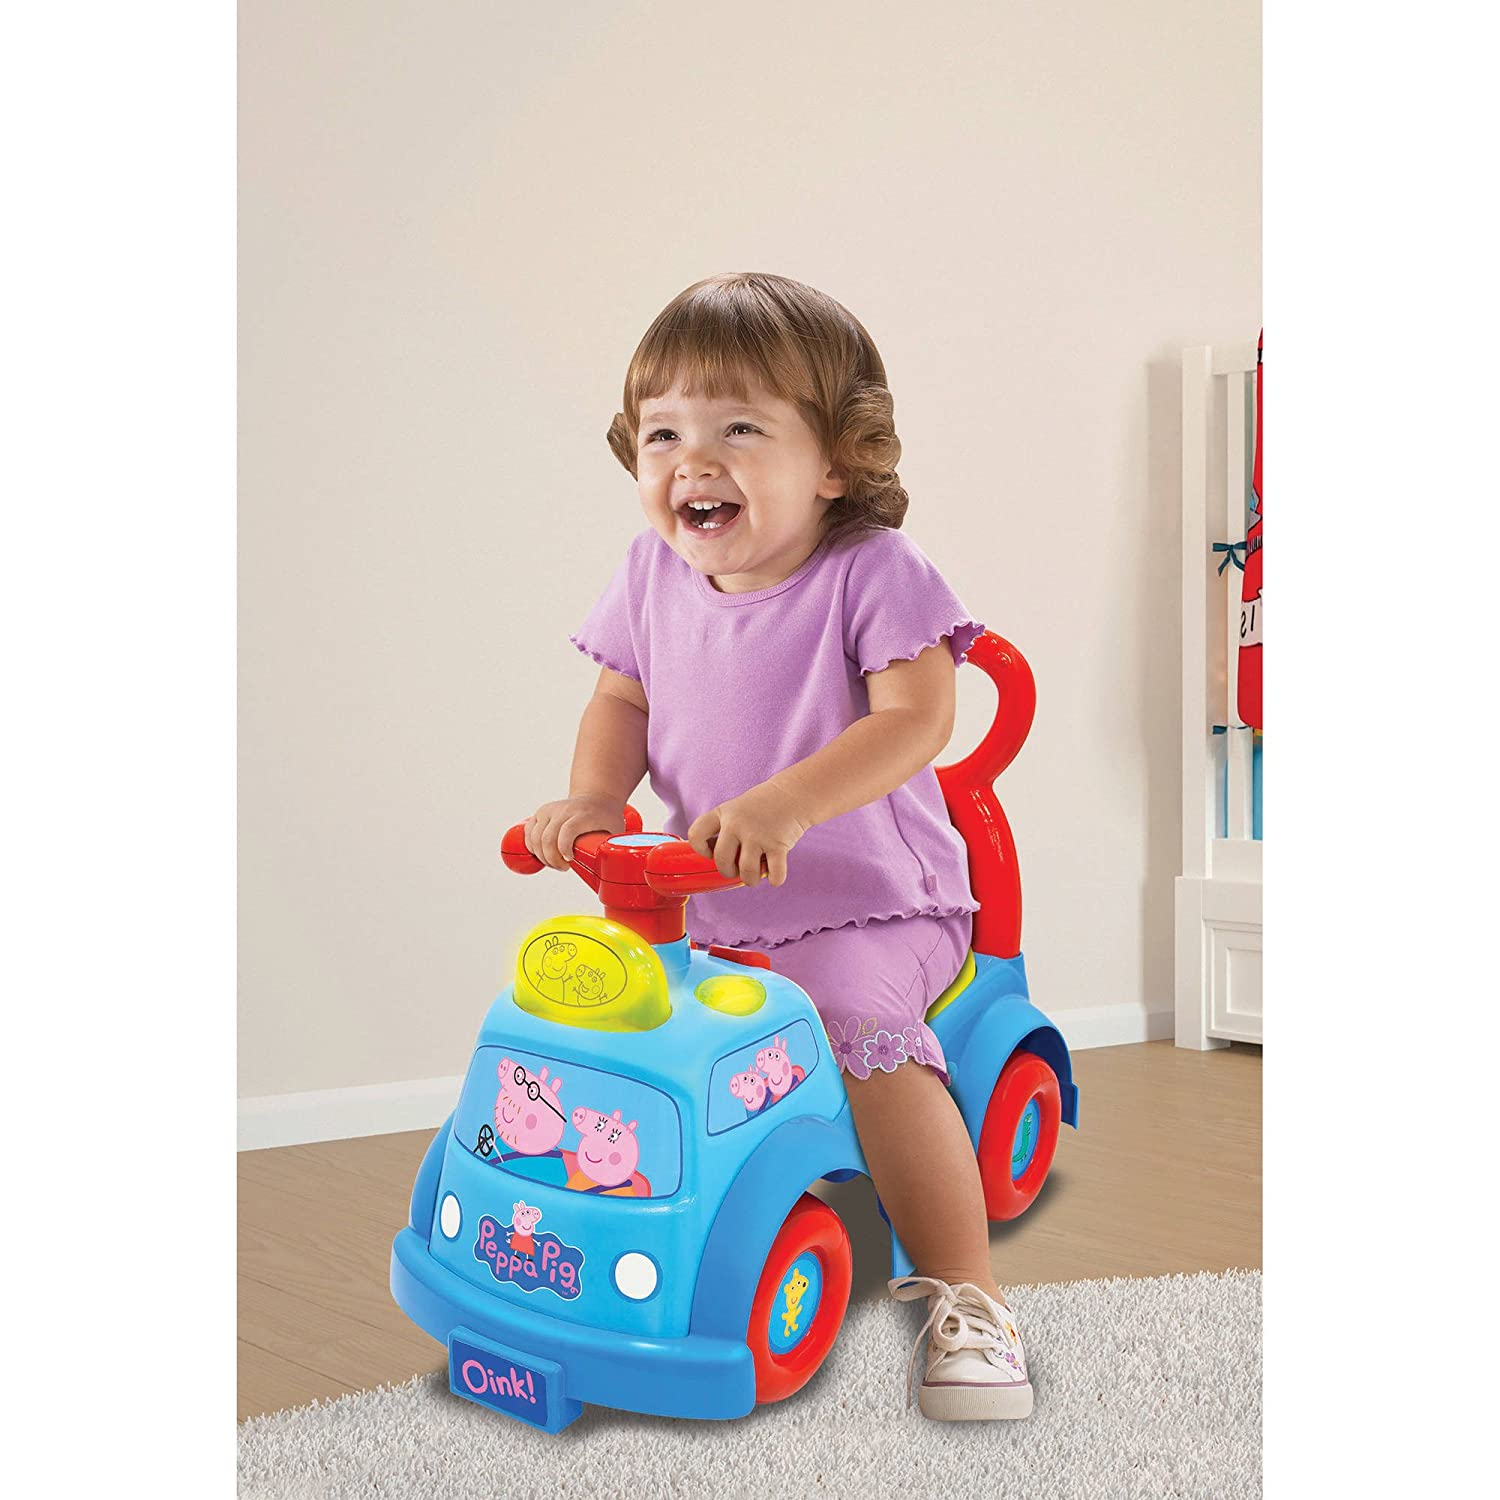 Amazon.com: Peppa Pig luces y sonido musicales Ride-on: Toys ...